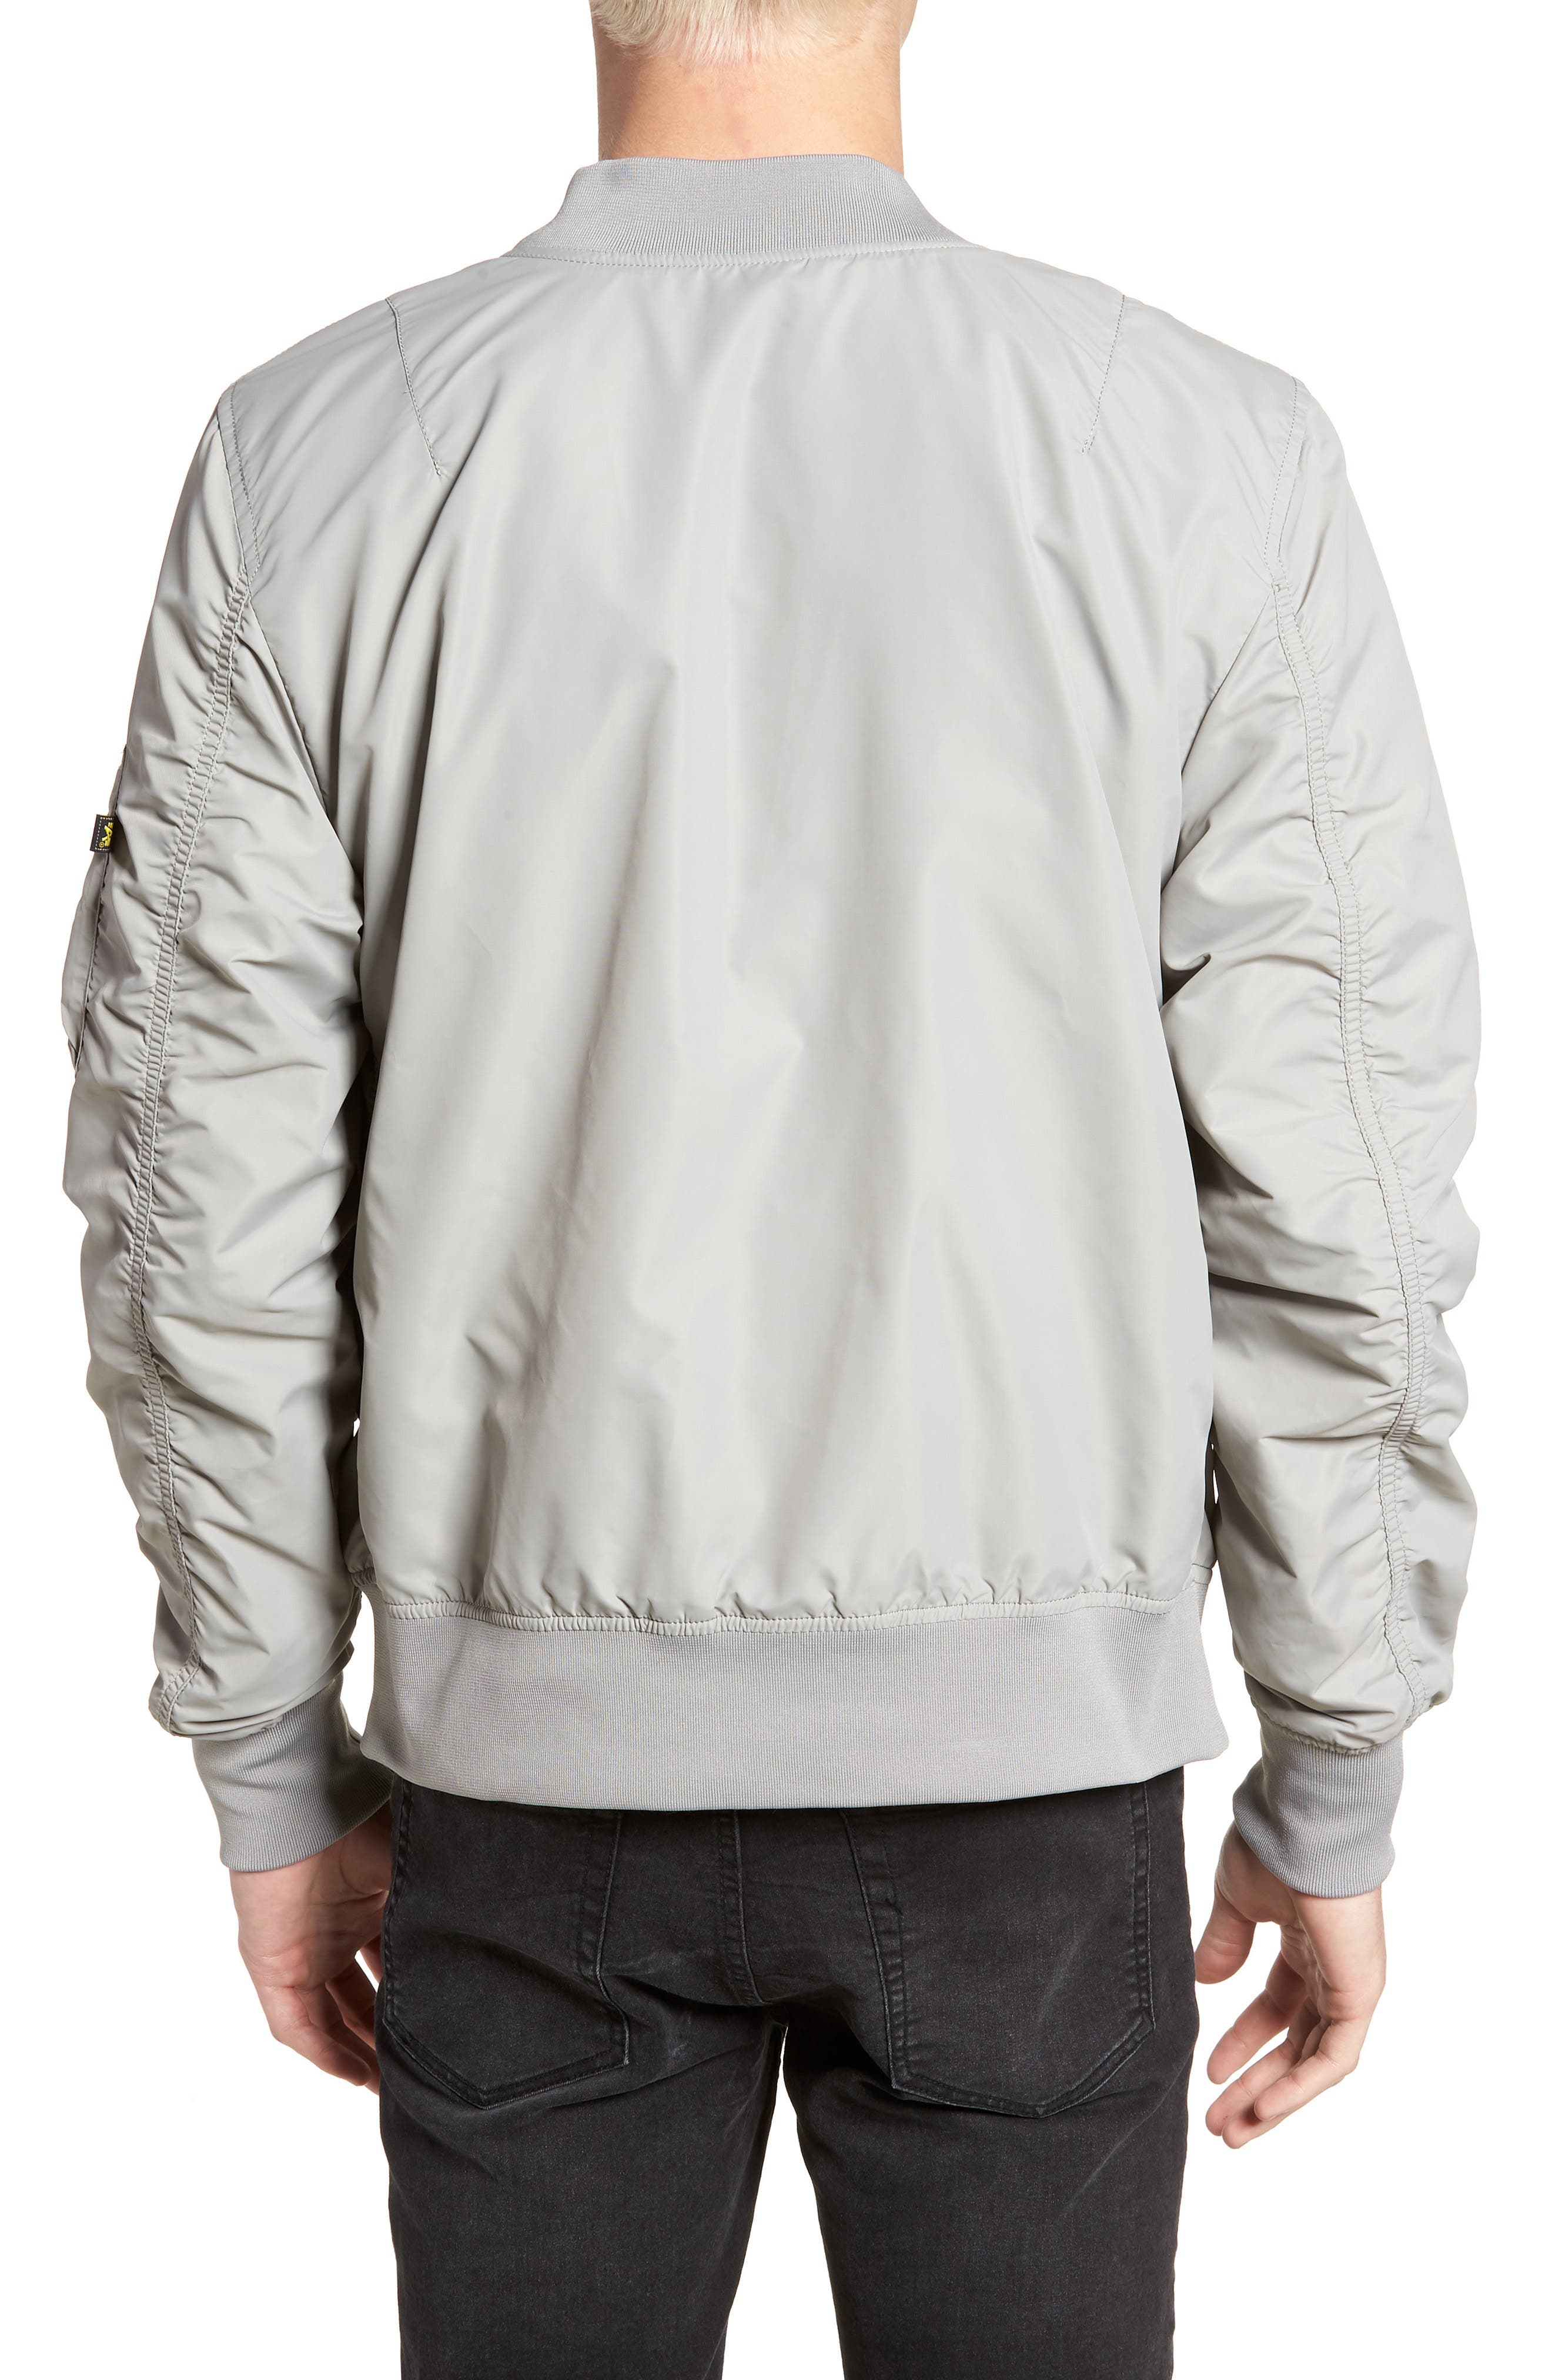 ALPHA INDUSTRIES,                             'L-2B - Dragonfly' Water Resistant Reversible Flight Jacket,                             Alternate thumbnail 2, color,                             020